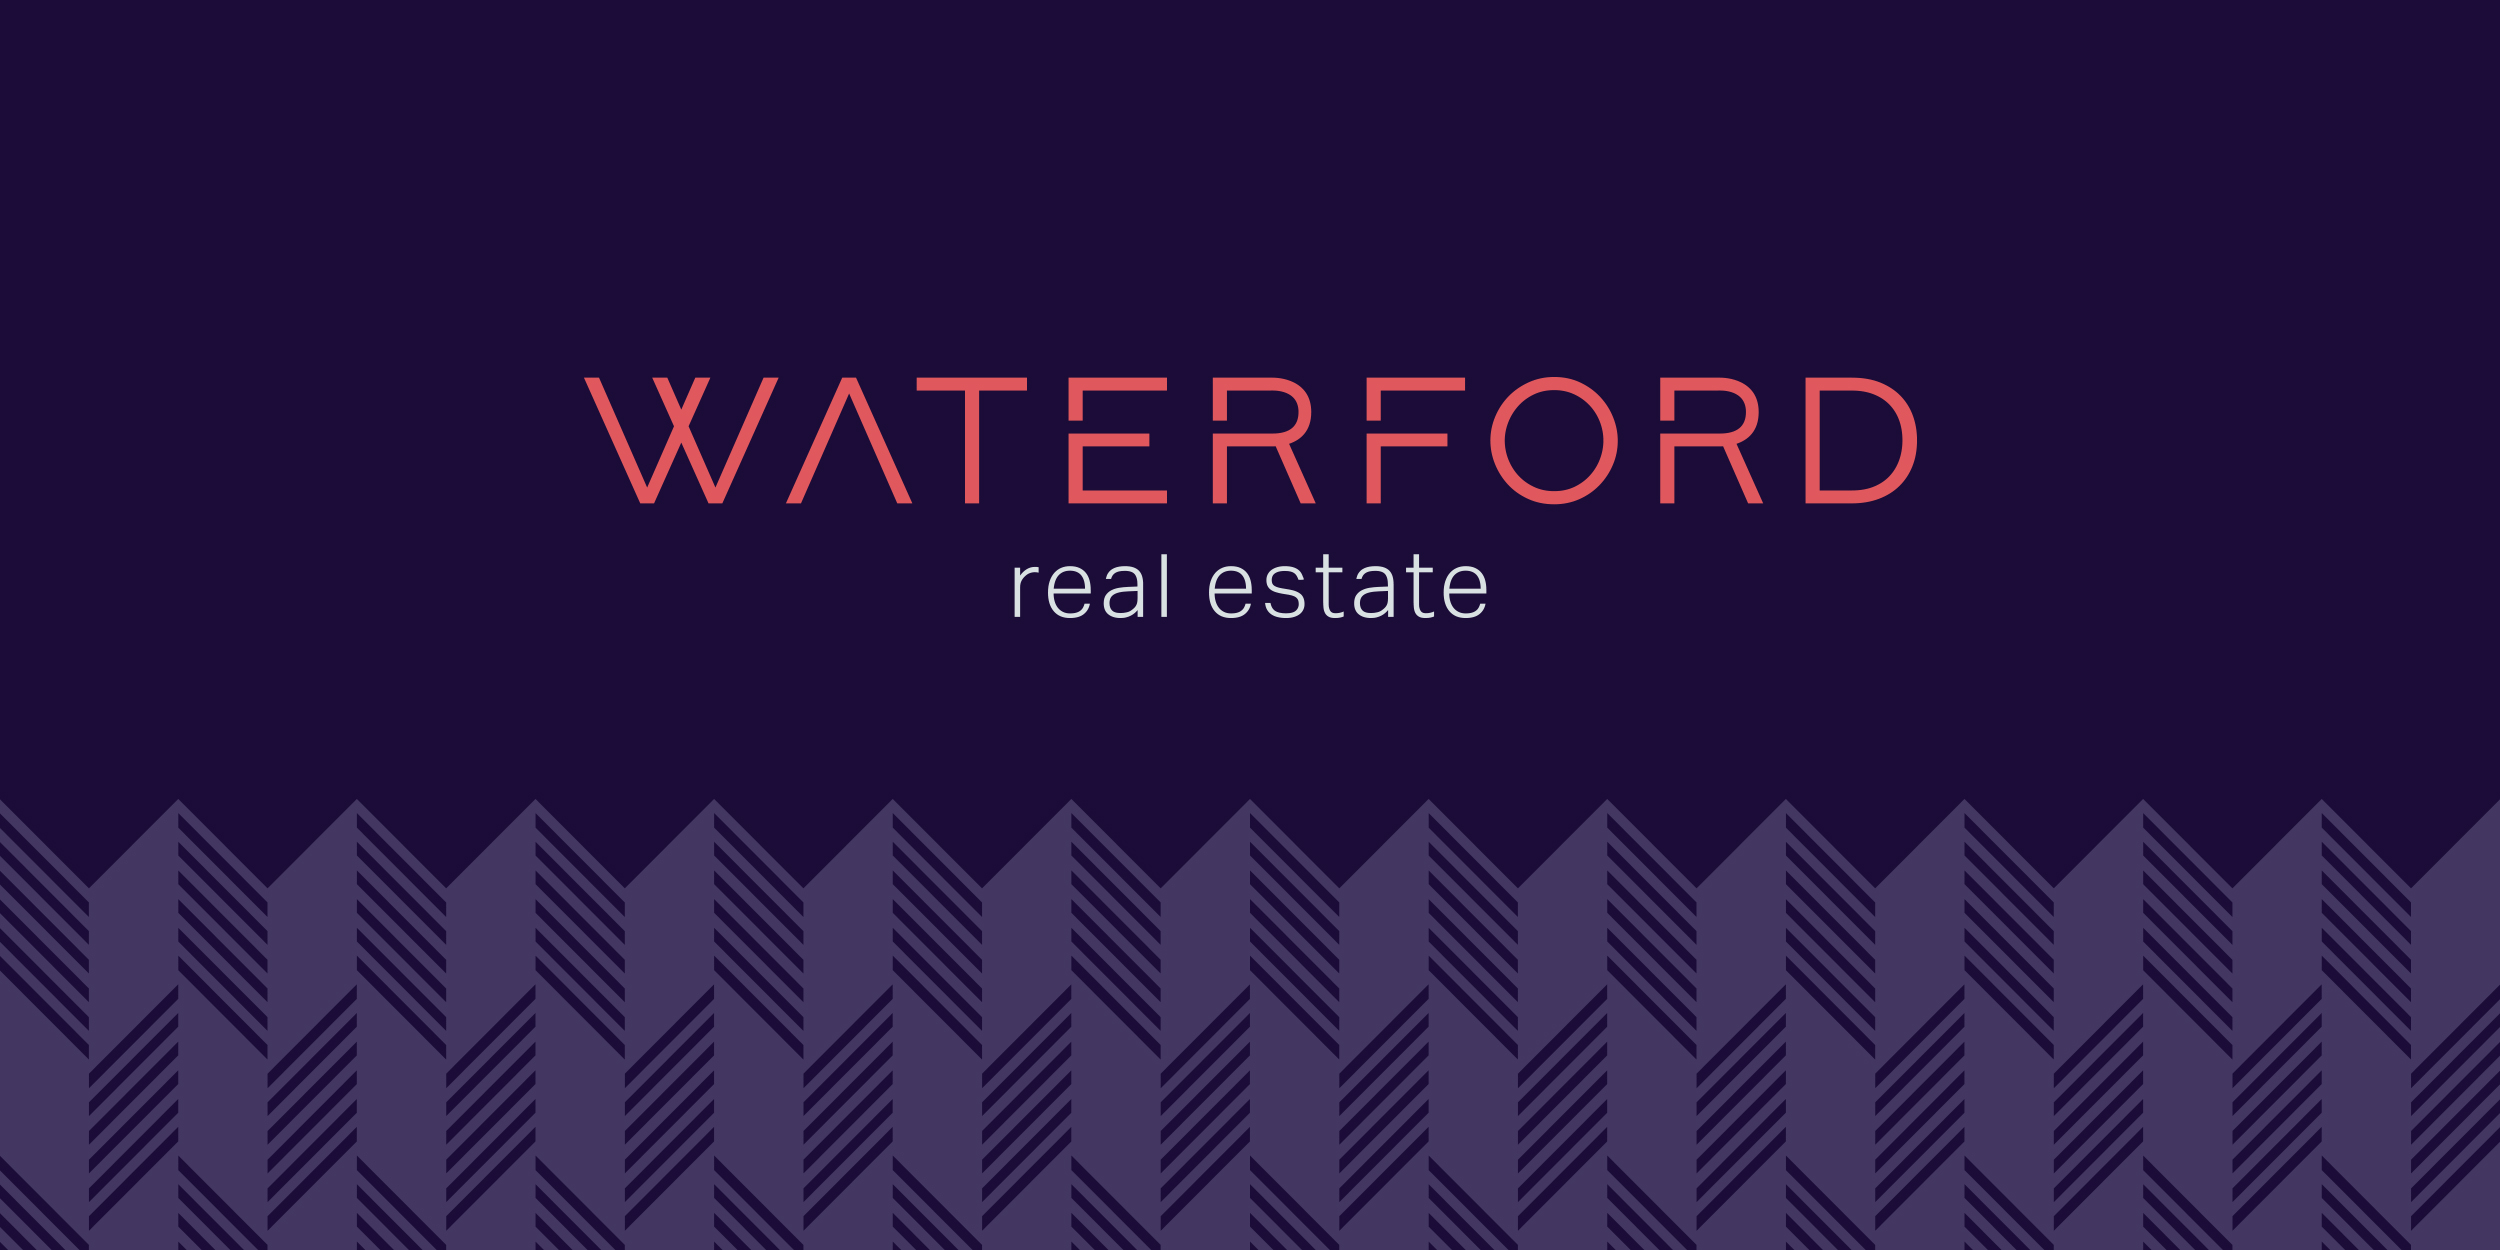 Waterford Real Estate new brand logo with custom pattern.